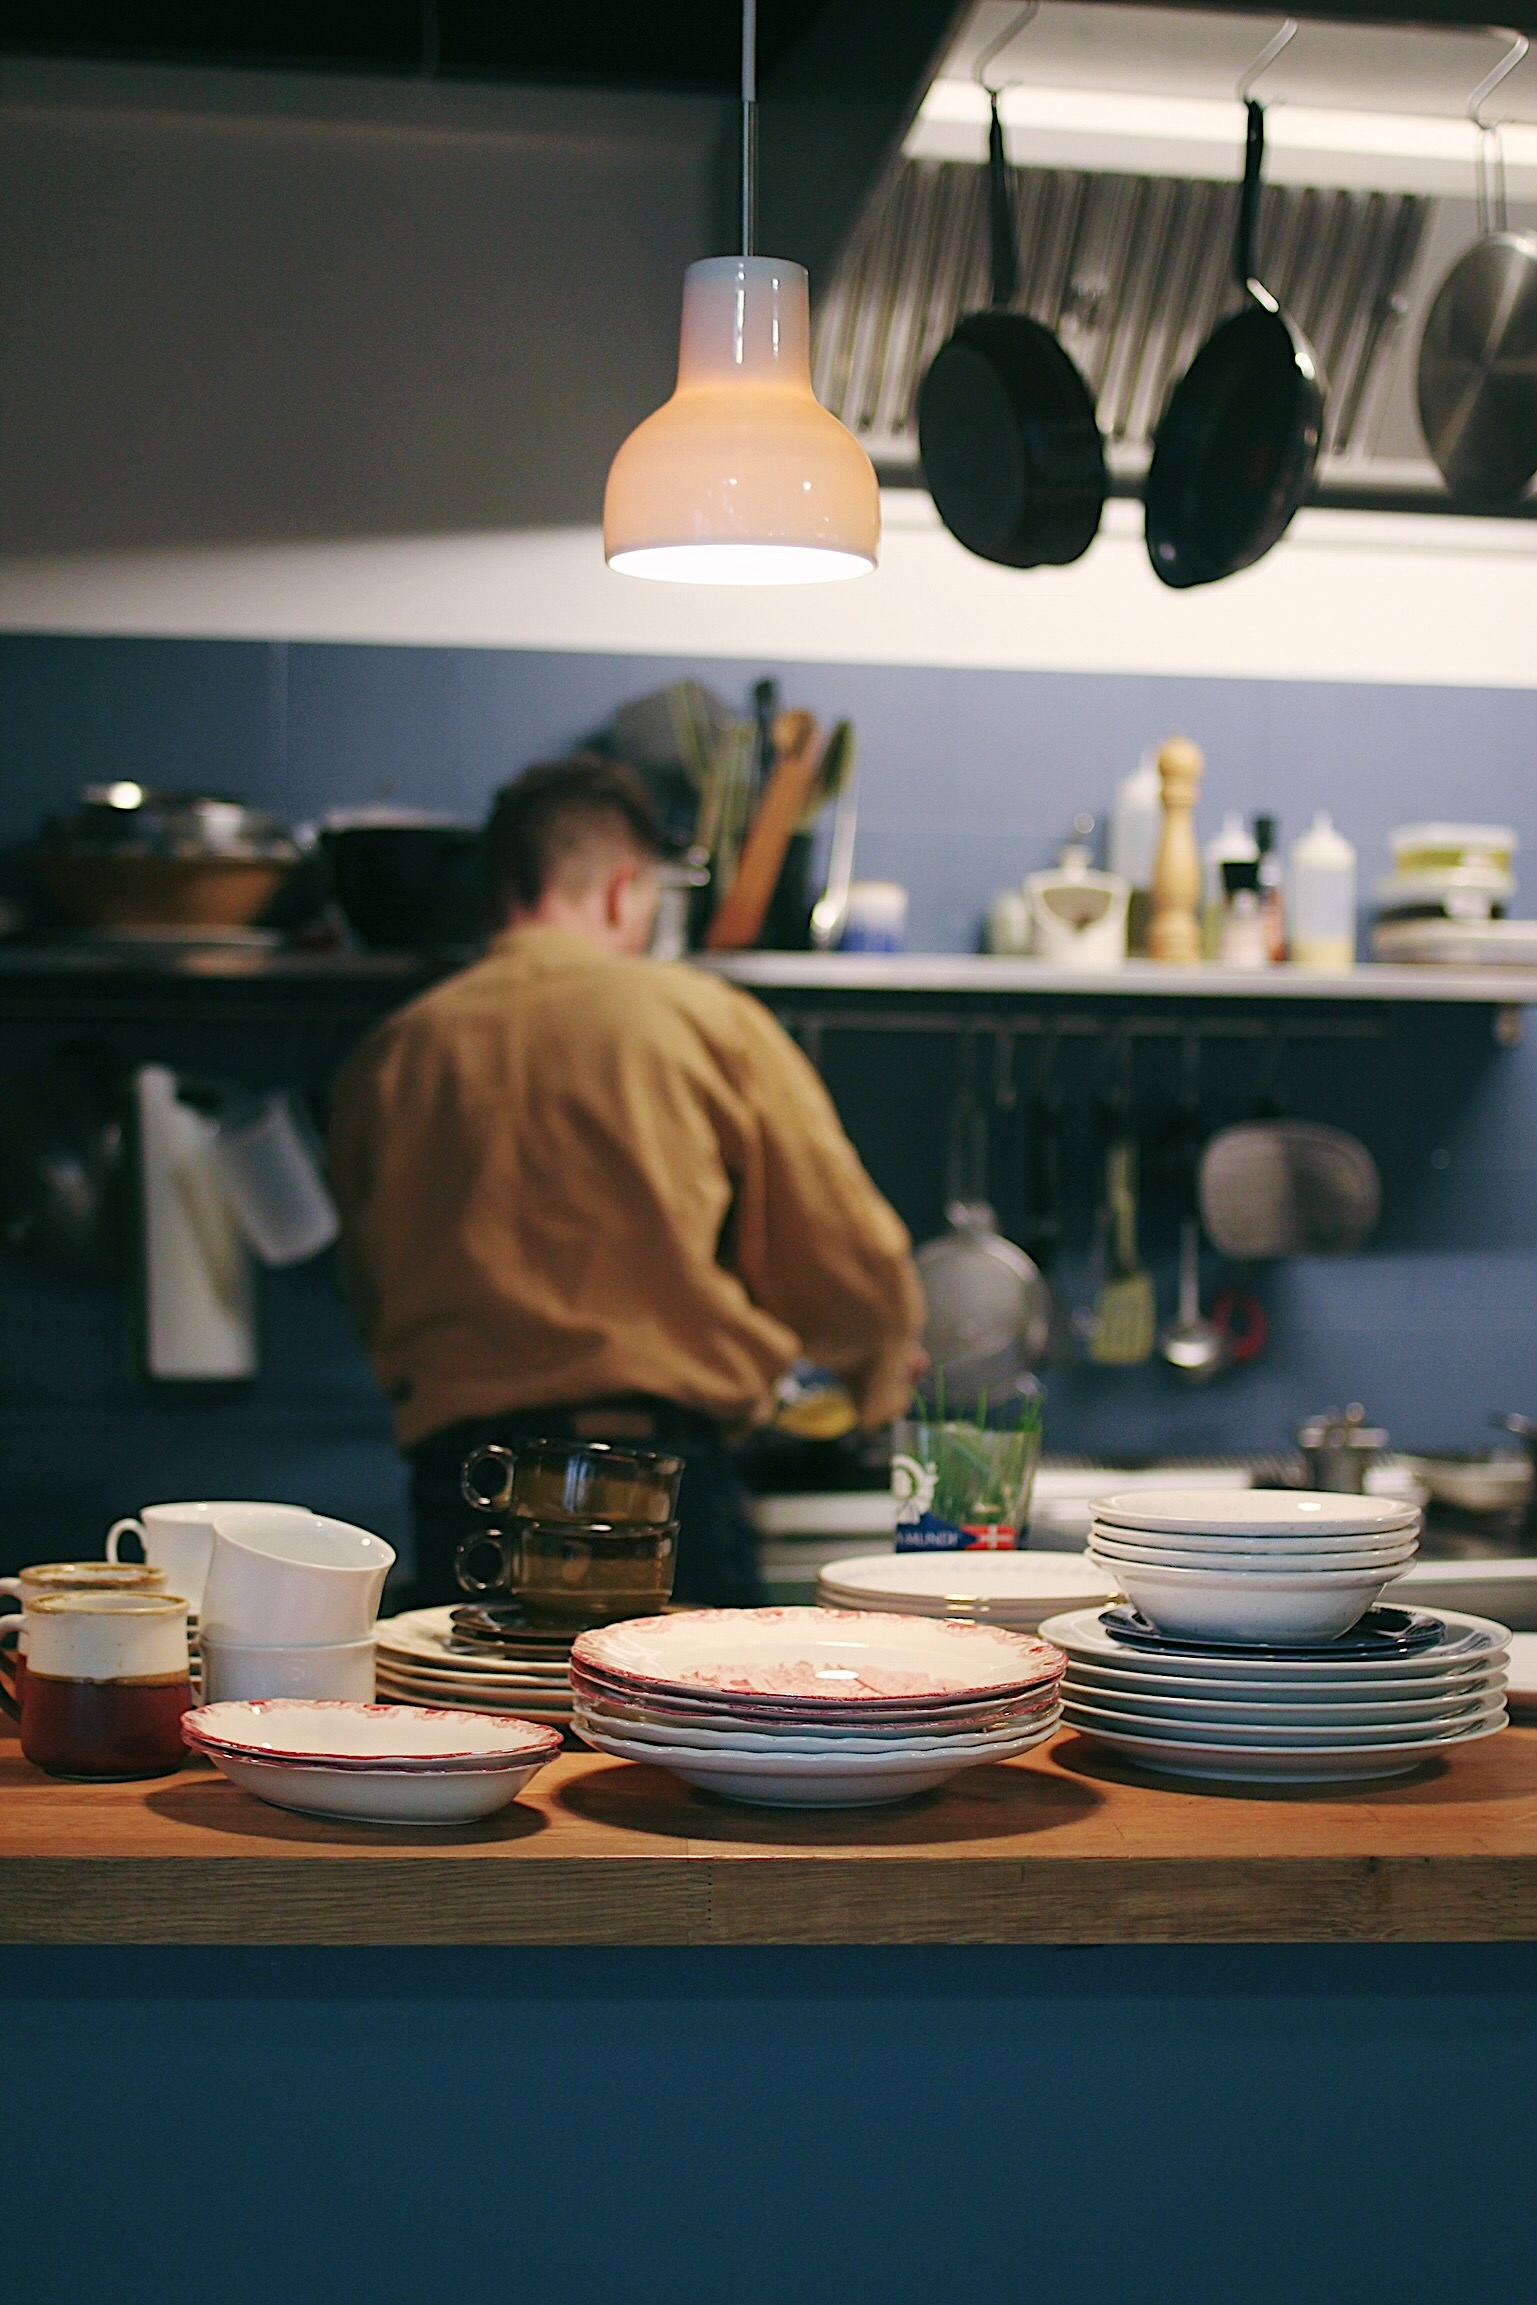 Plates, cups, bowls... you'll find it all at EggSperience.